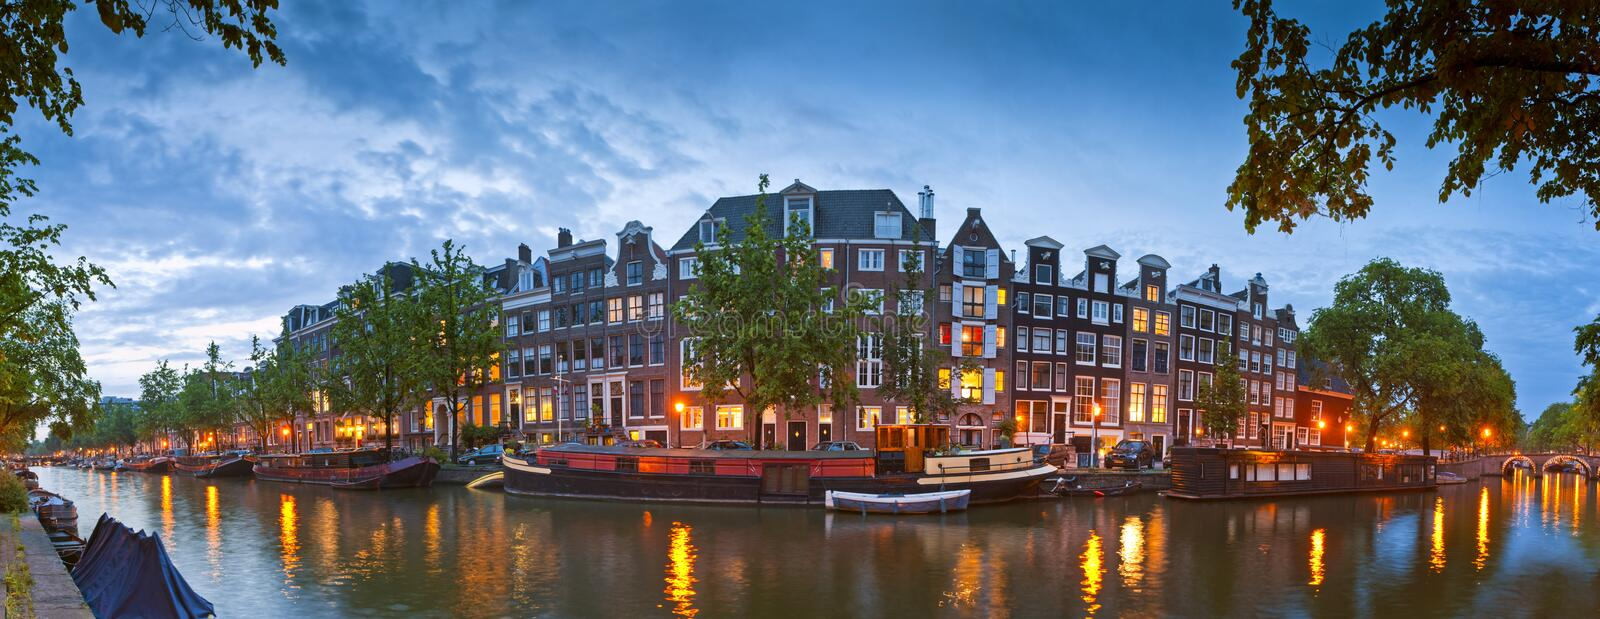 Amsterdam tranquil canal scene, Holland stock images